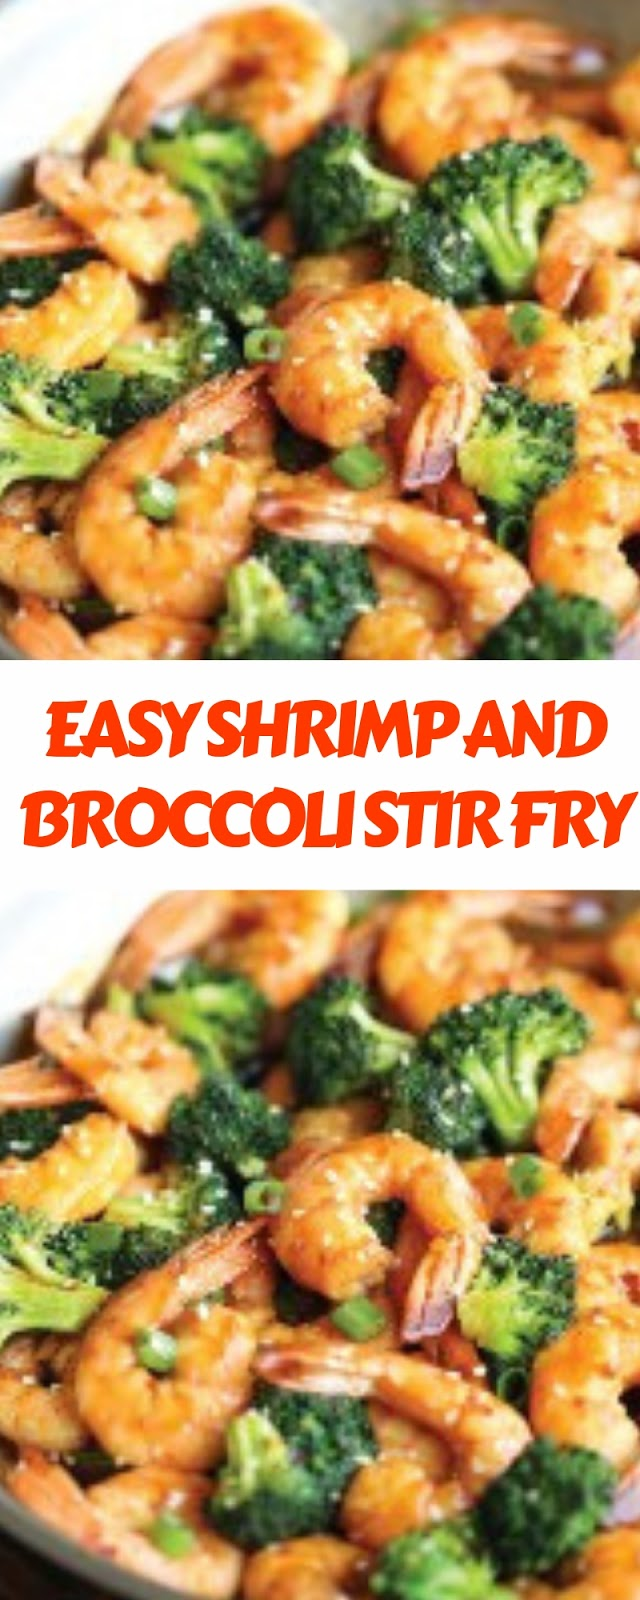 EASY SHRIMP AND BROCCOLI STIR FRY